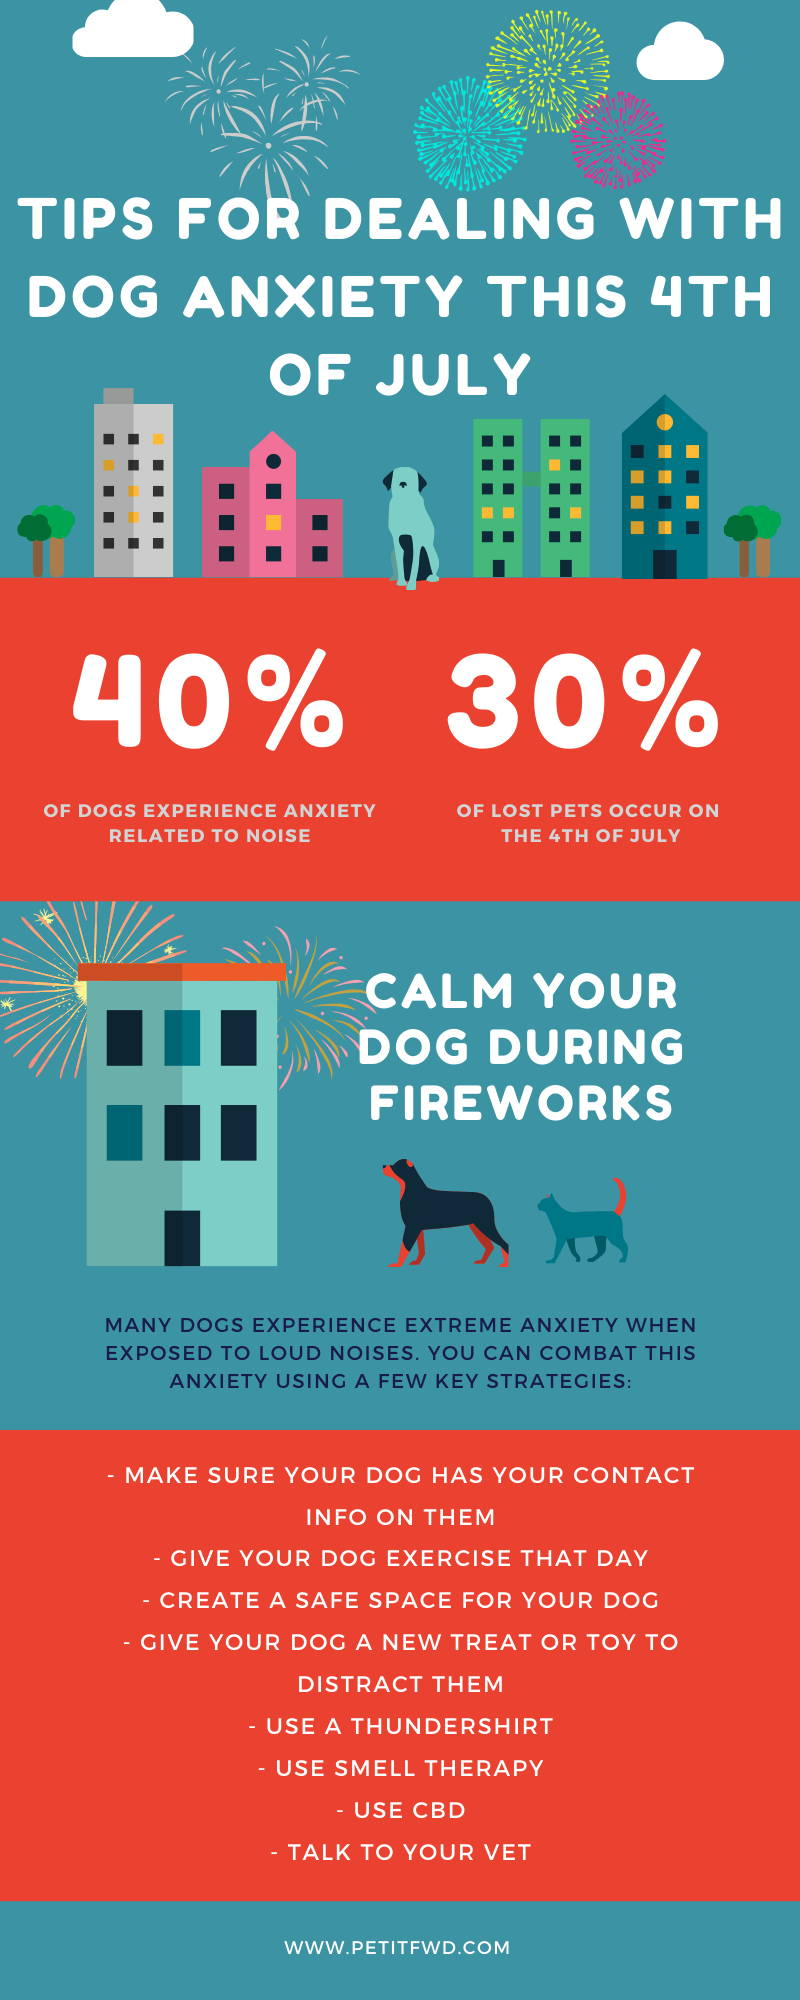 Tips for Dealing with Dog Anxiety on 4th of July